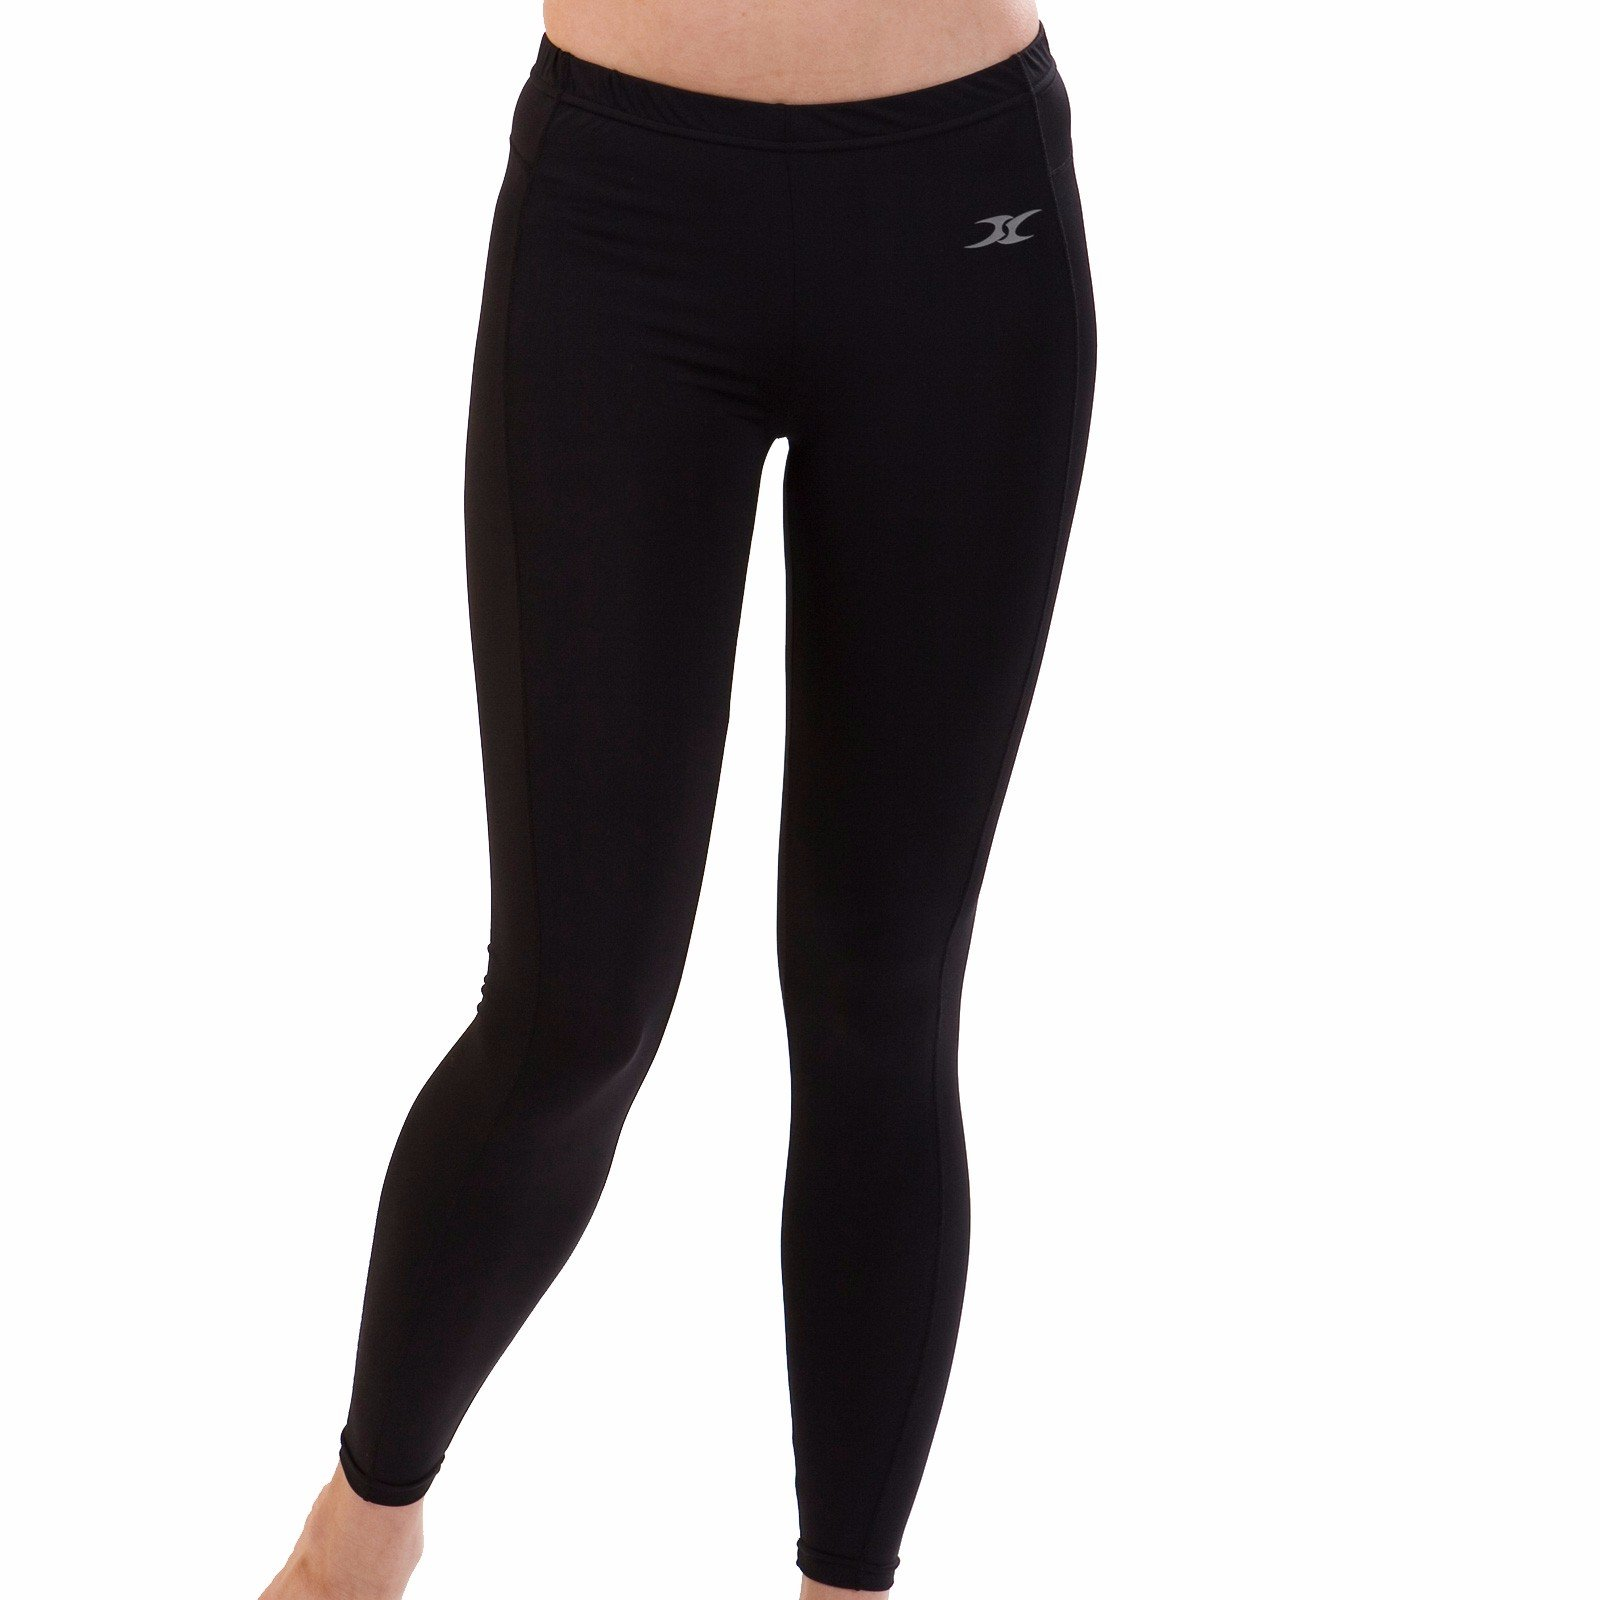 Women Thermal Underwear Pants Leggings Tights Base Layer Compression Bottoms NPW S